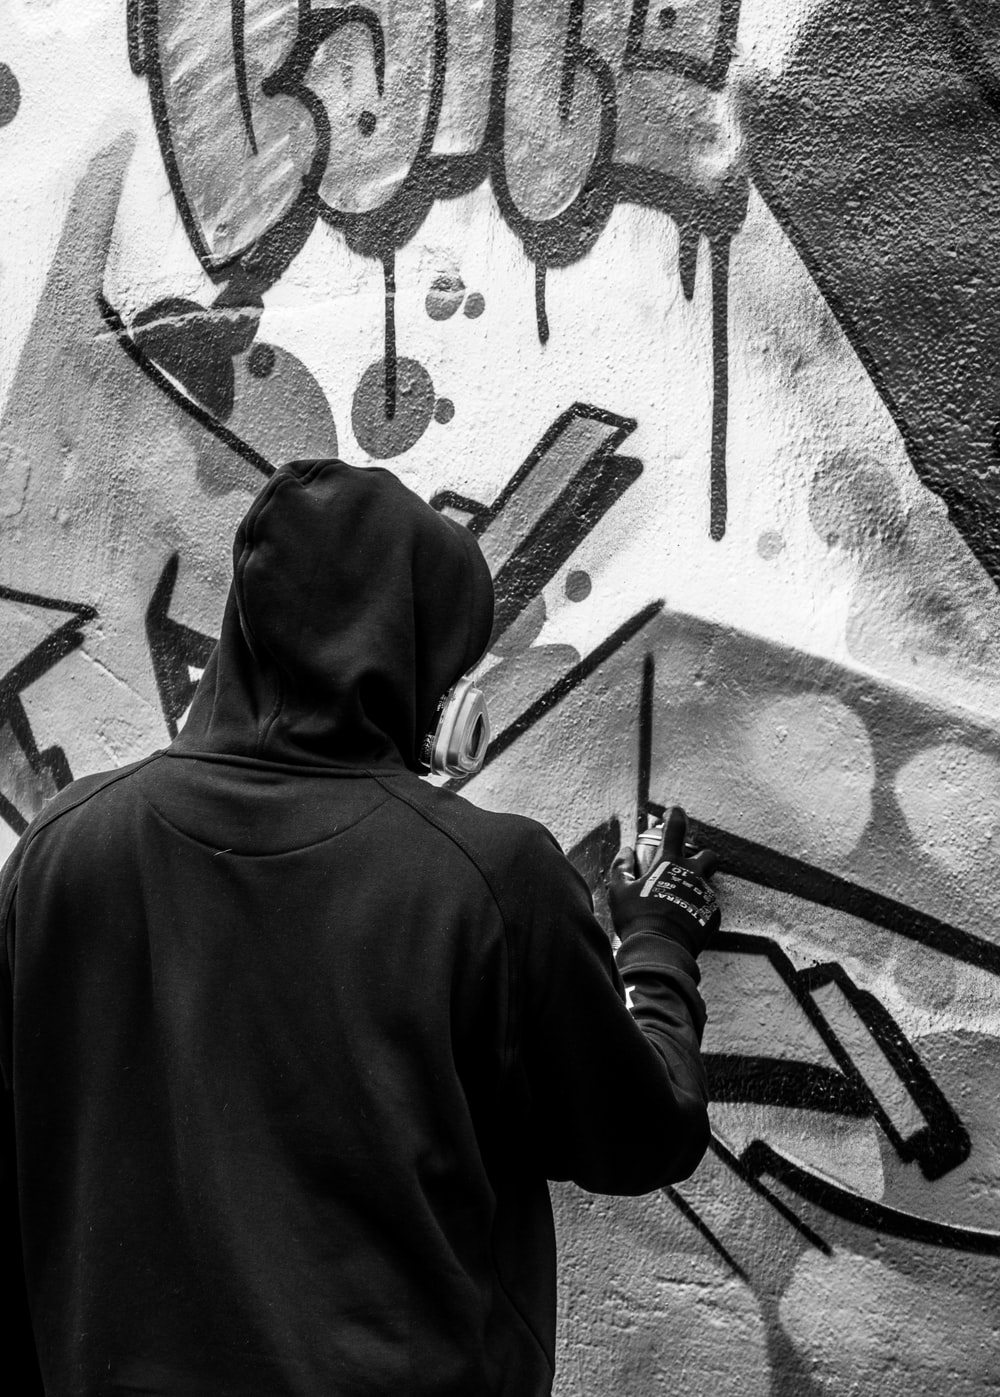 grayscale photography of person painting on wall